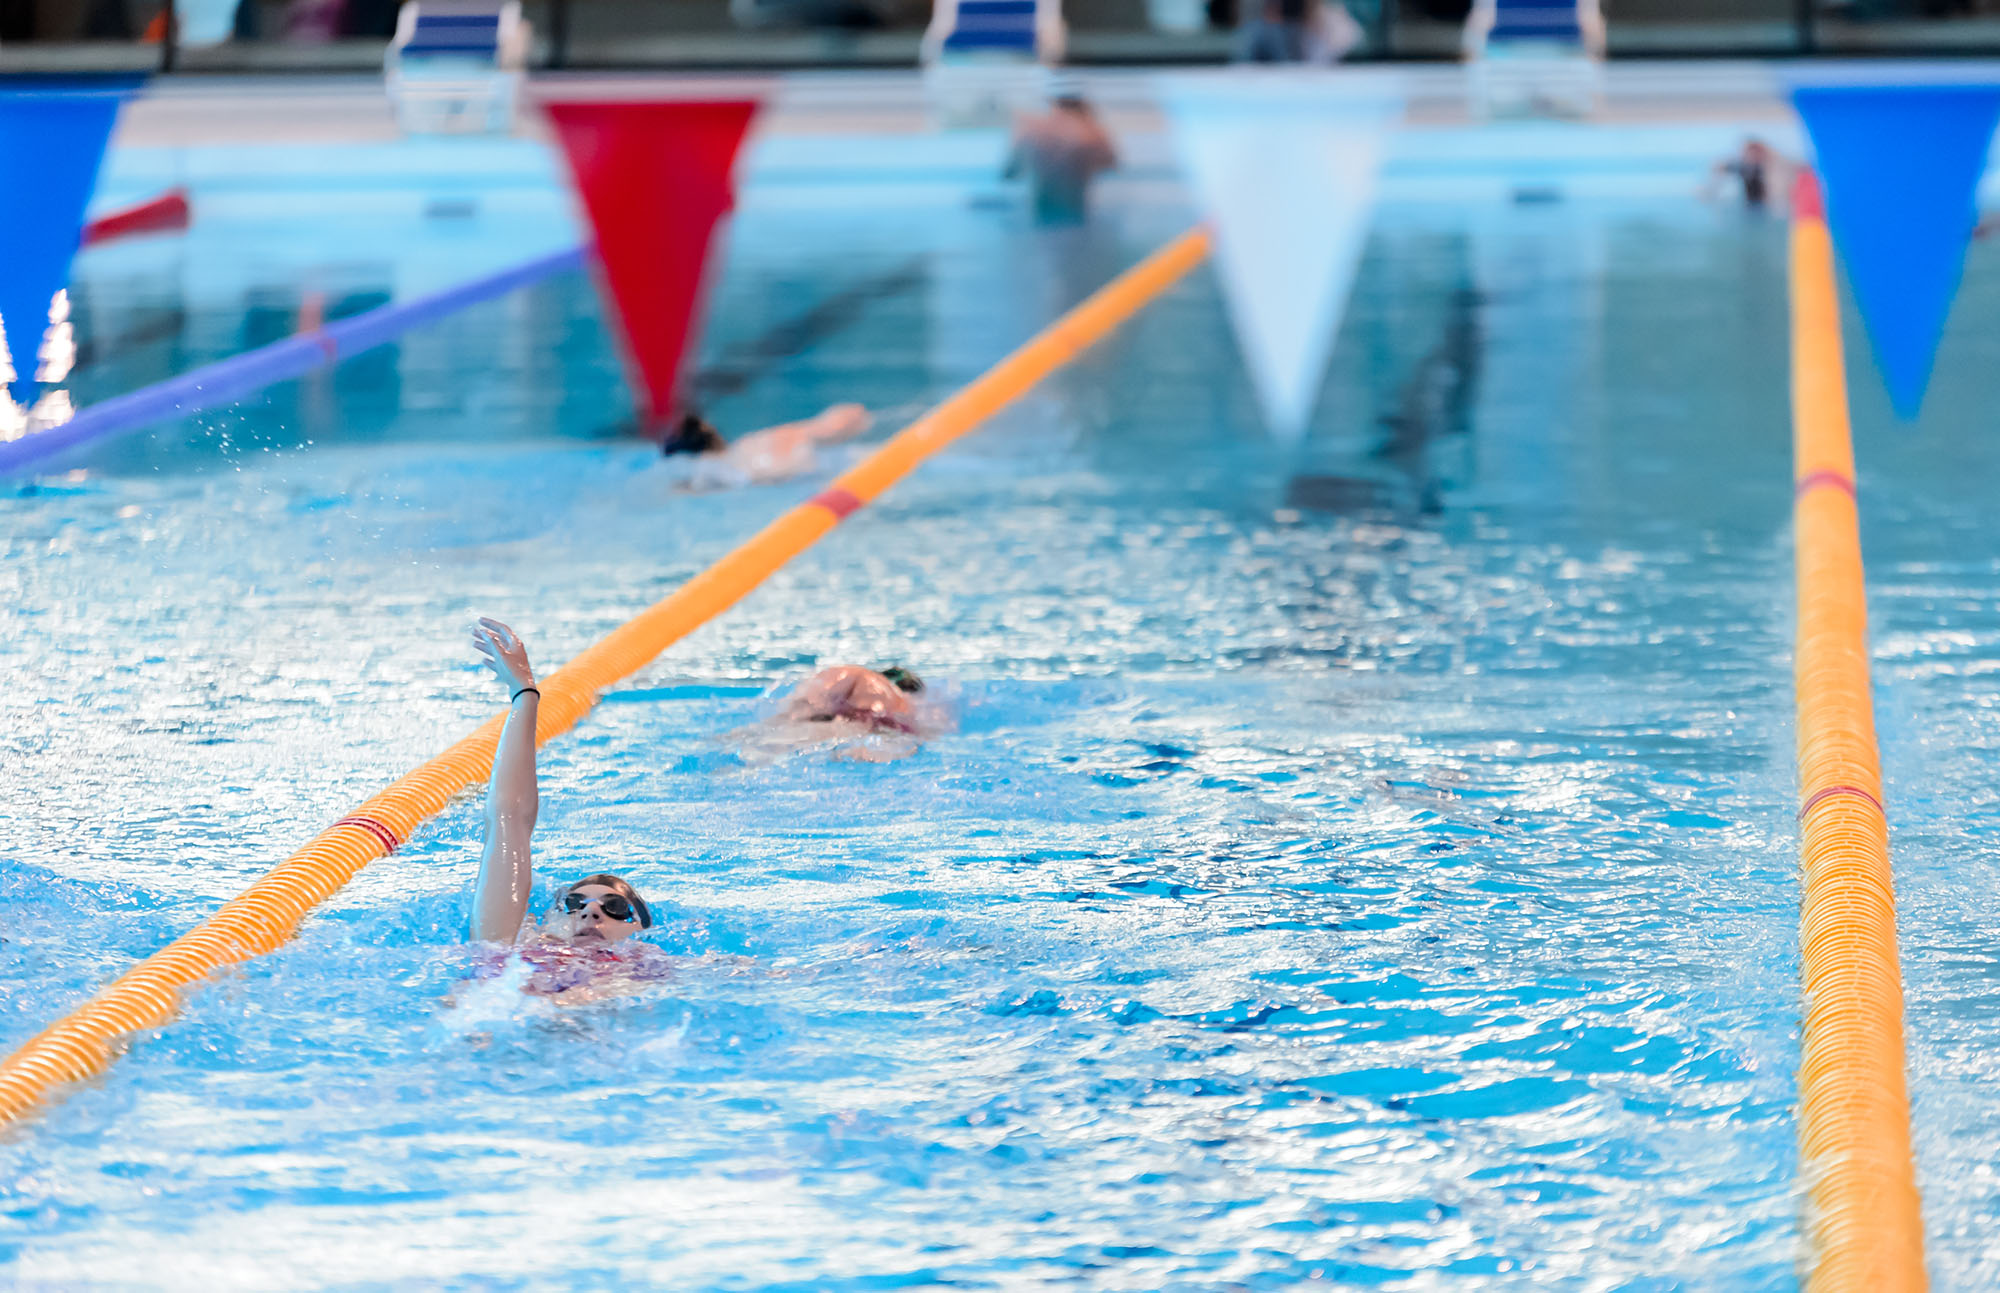 A woman swims backstroke in a lane at the London Aquatics Centre